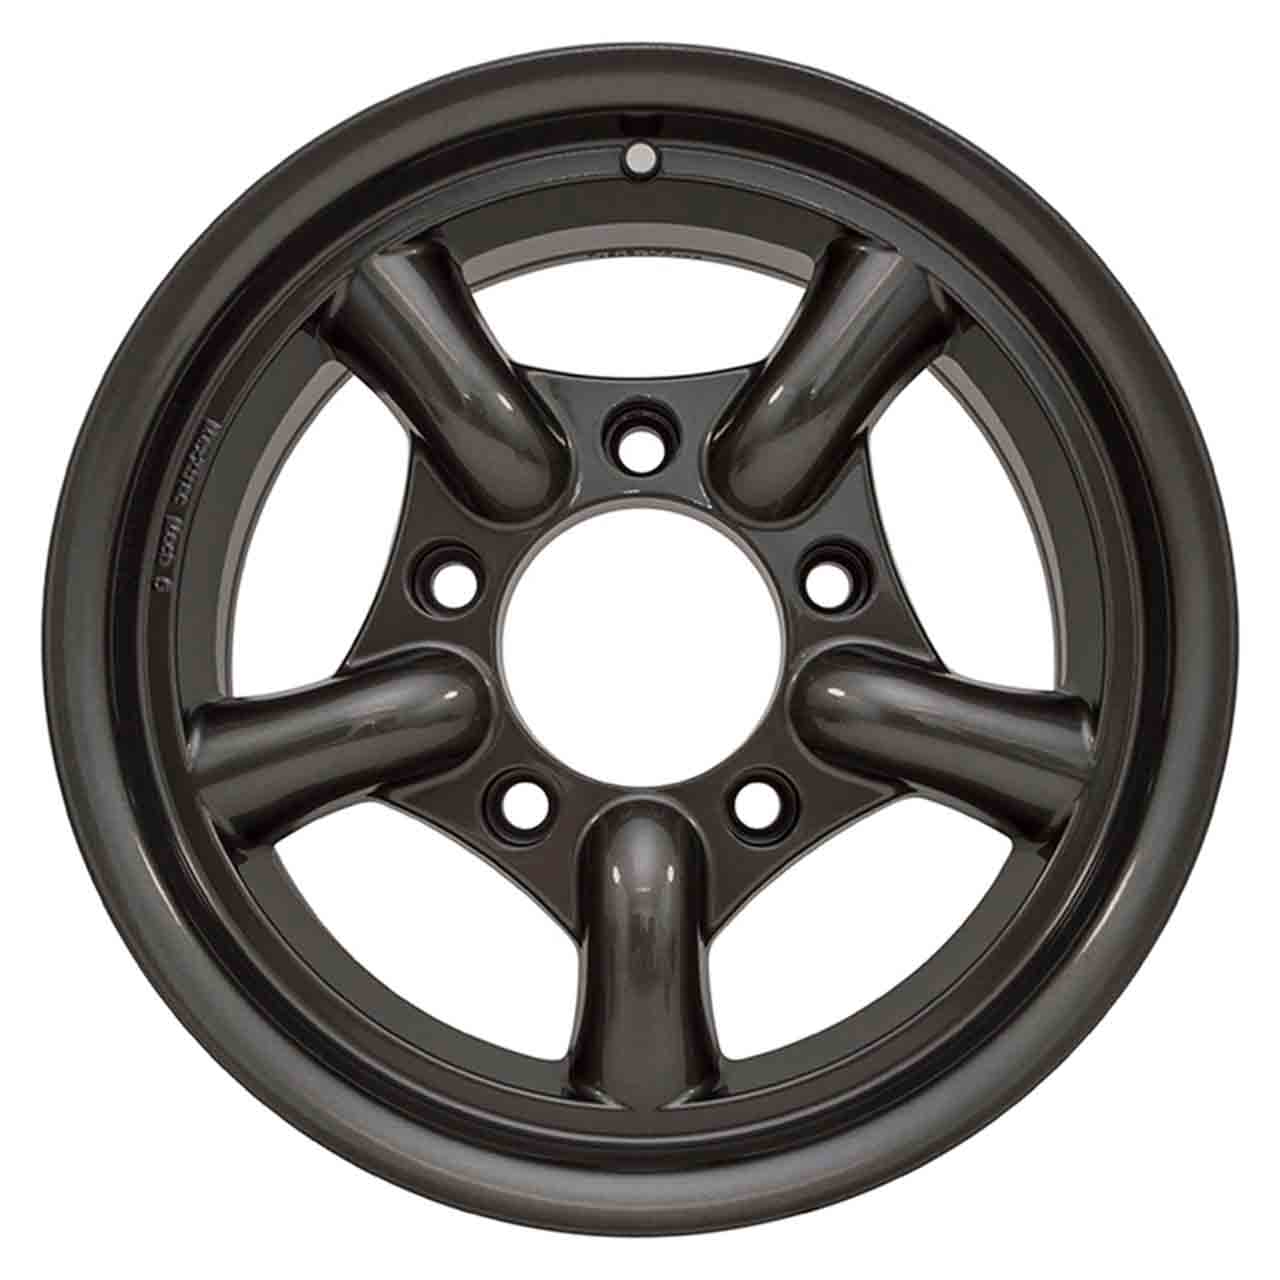 Defender Discovery 1 Range Rover Classic Ruote 16 X 8 Colore Antracite GR2-05772